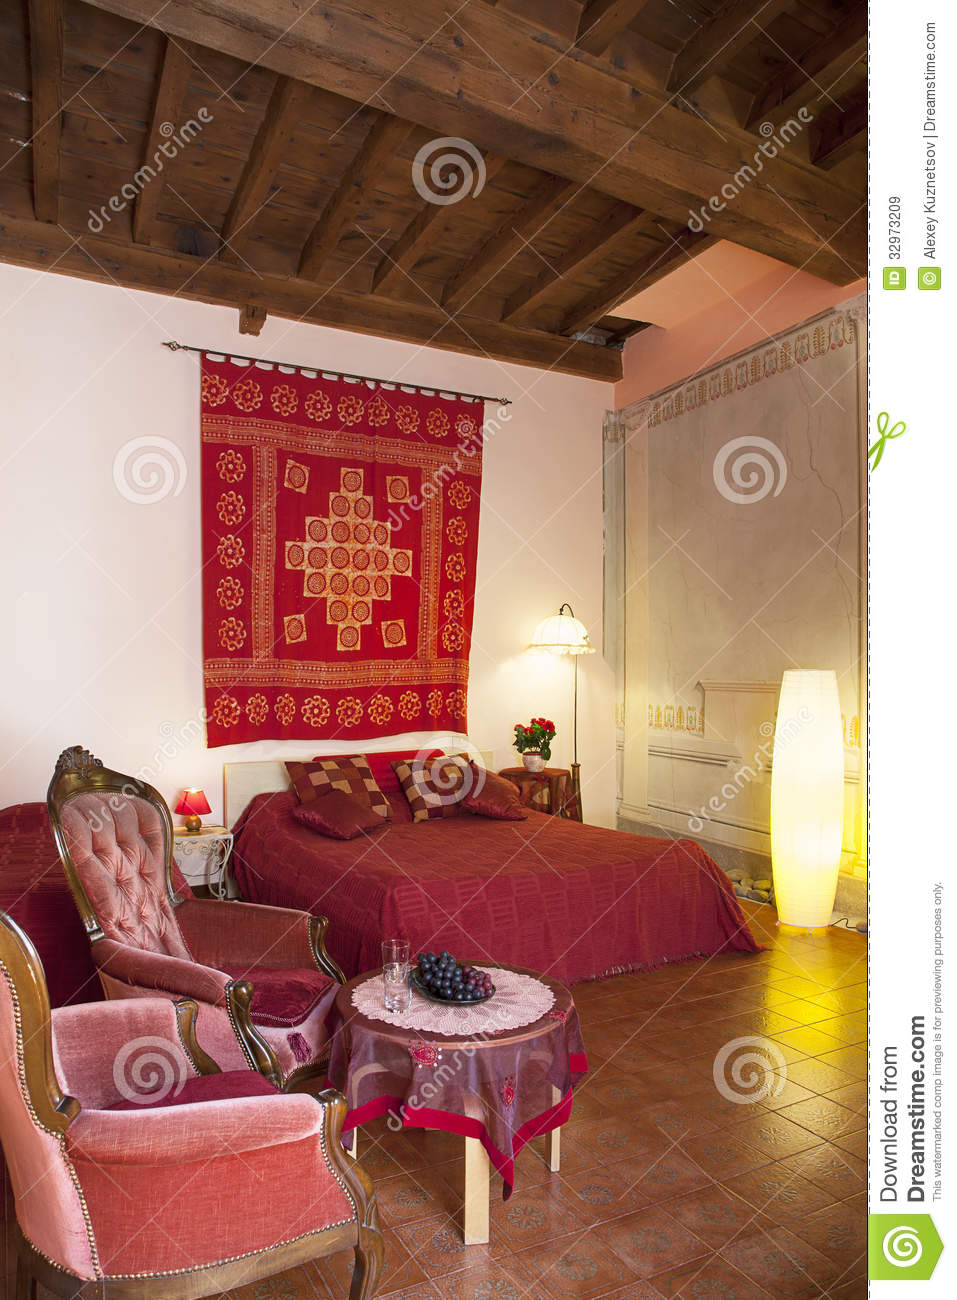 Bedroom in red colors royalty free stock images image Color hotel italy